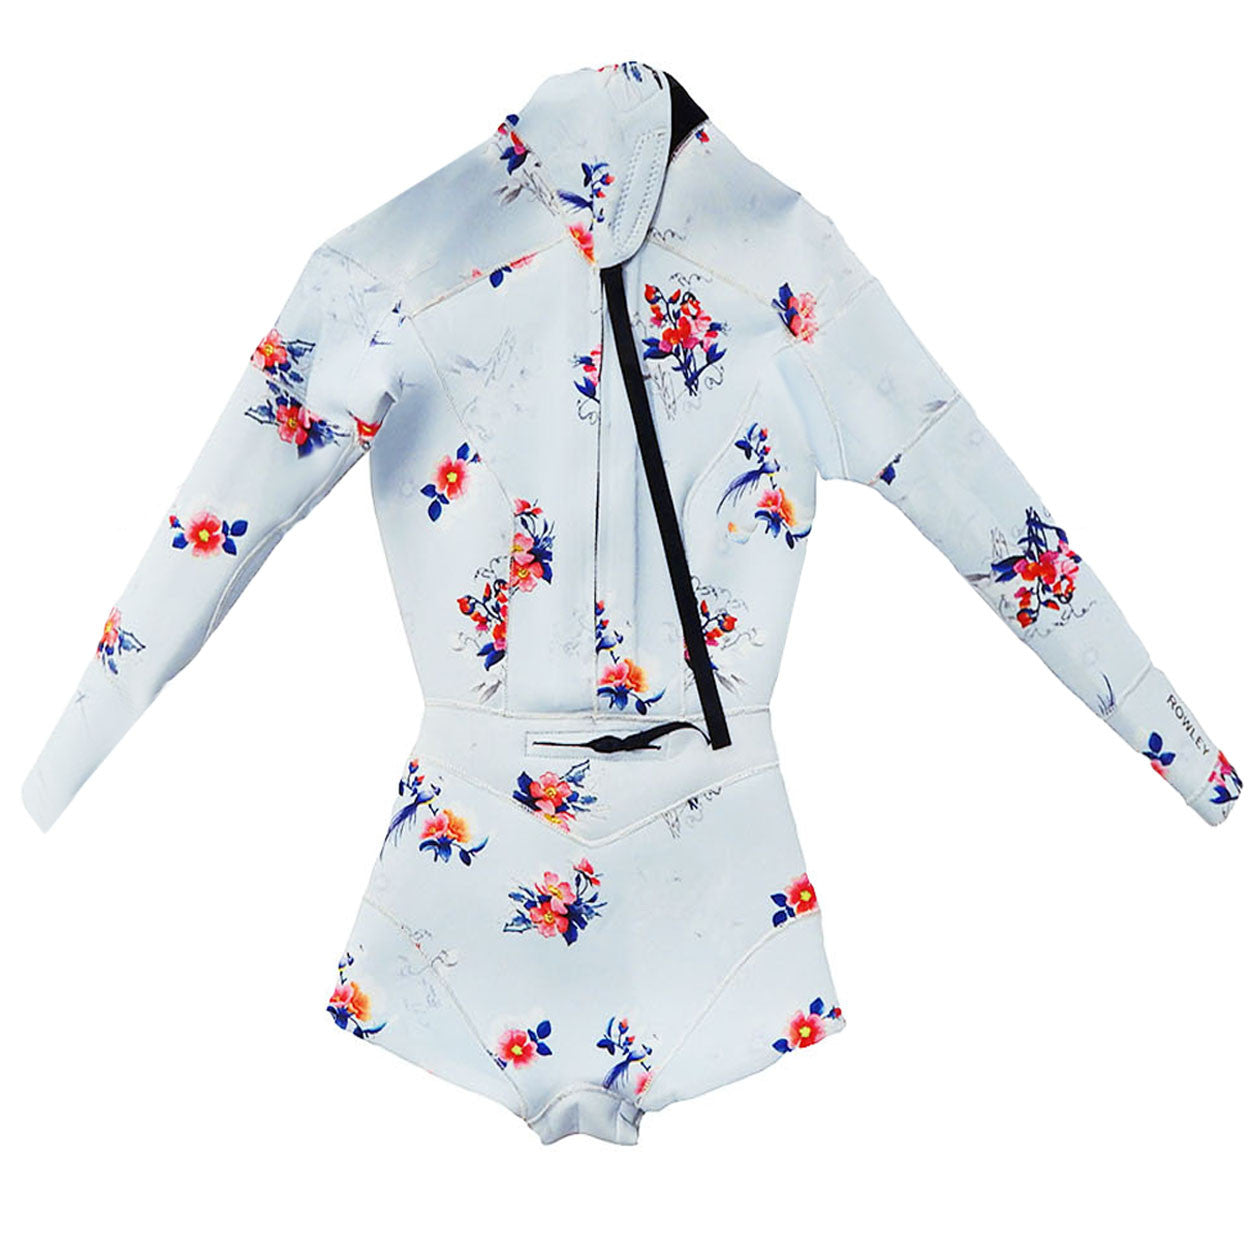 Back flat image of the 2mm Fiber-Lite neoprene floral print wetsuit